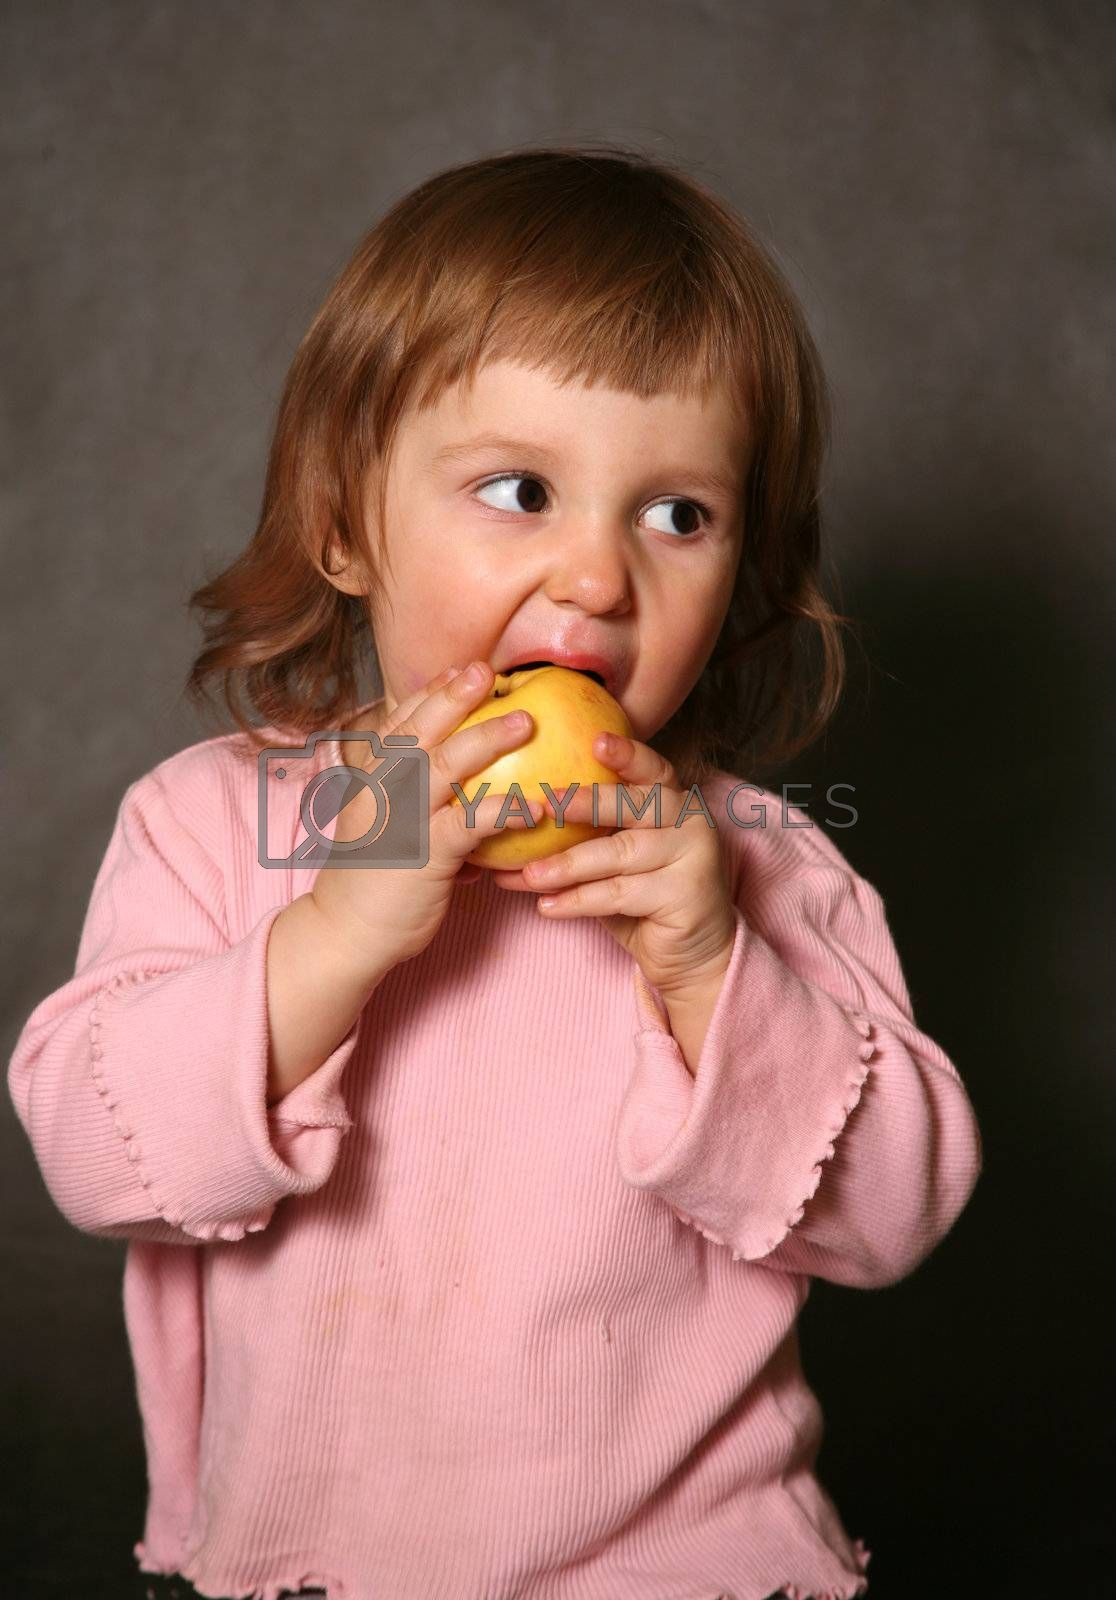 The little girl eats a yellow apple